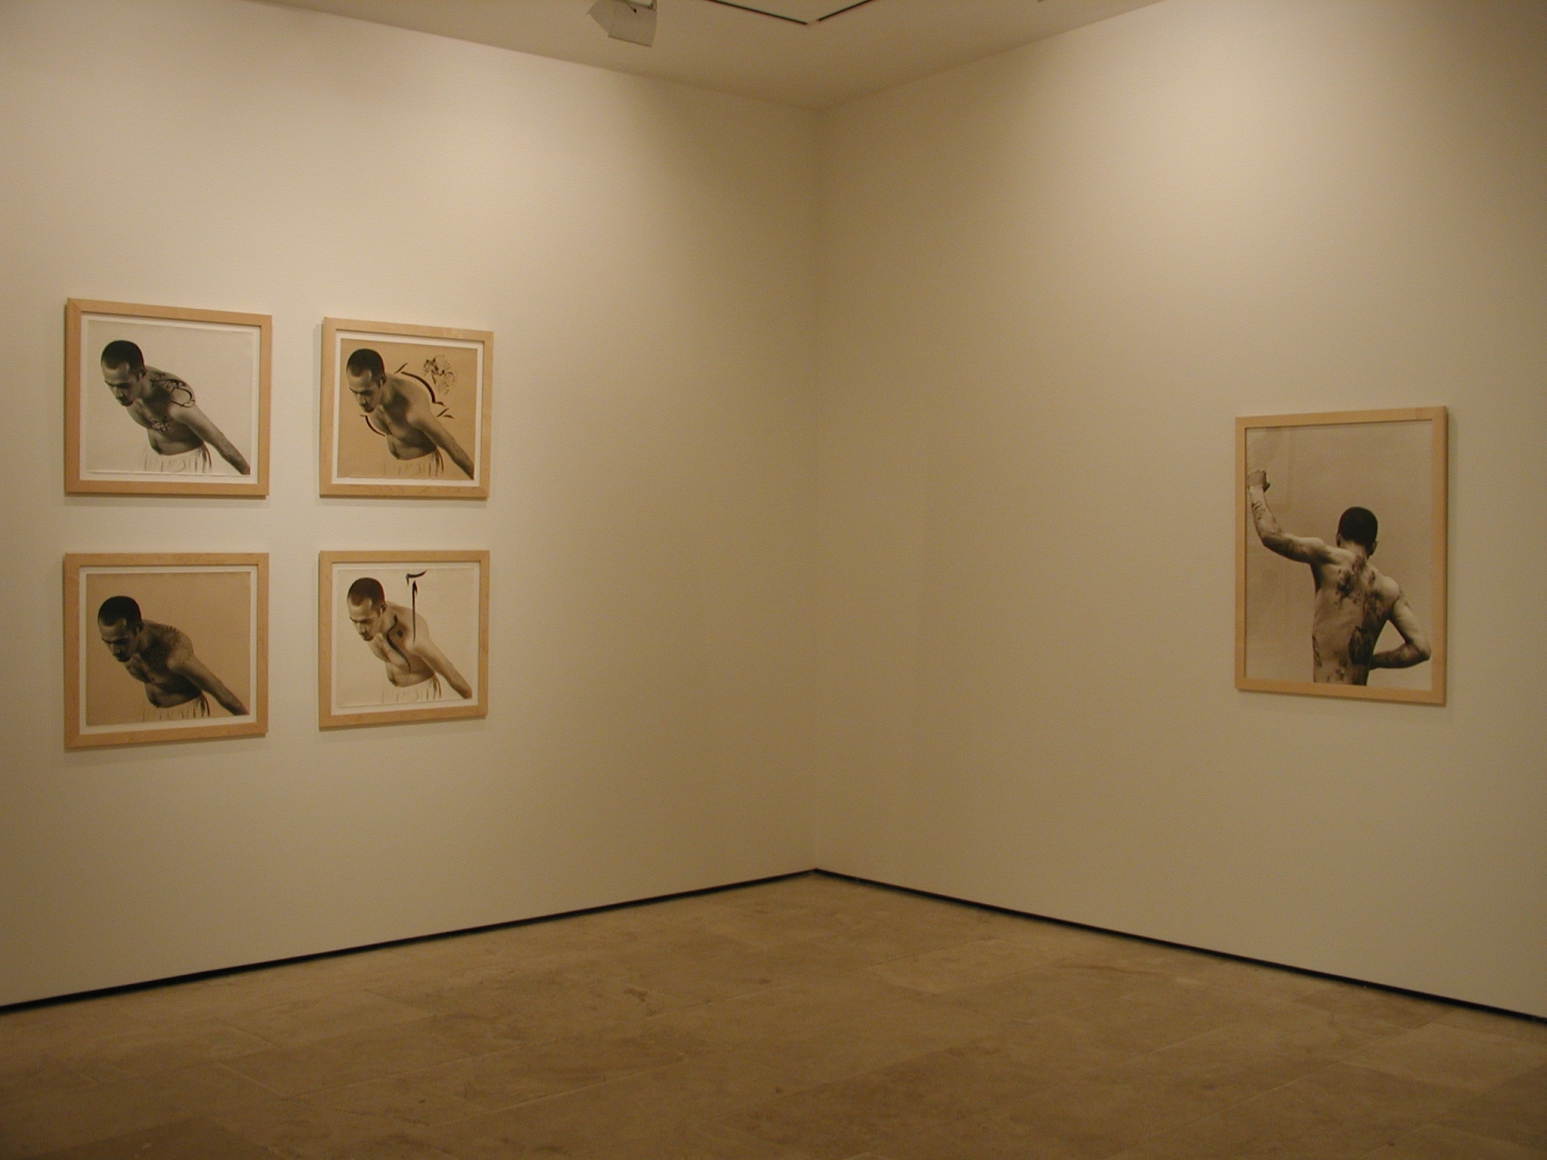 Five framed photographs in the exhibition Sadegh Tirafkan at Lehmann Maupin in New York in 2004